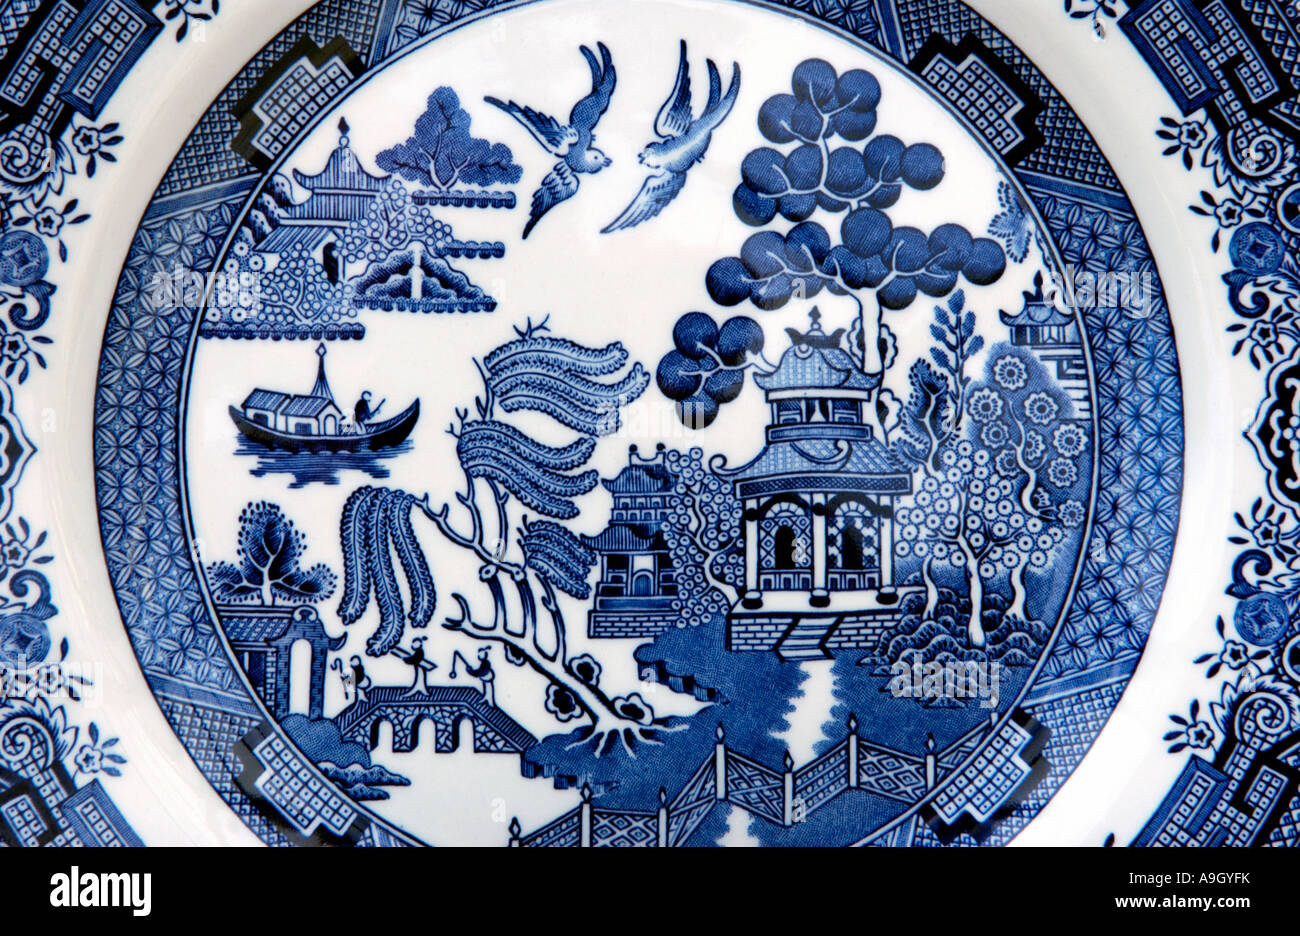 Traditional Willow Pattern design on an English blue and white style china dinner plate. & Traditional Willow Pattern design on an English blue and white style ...